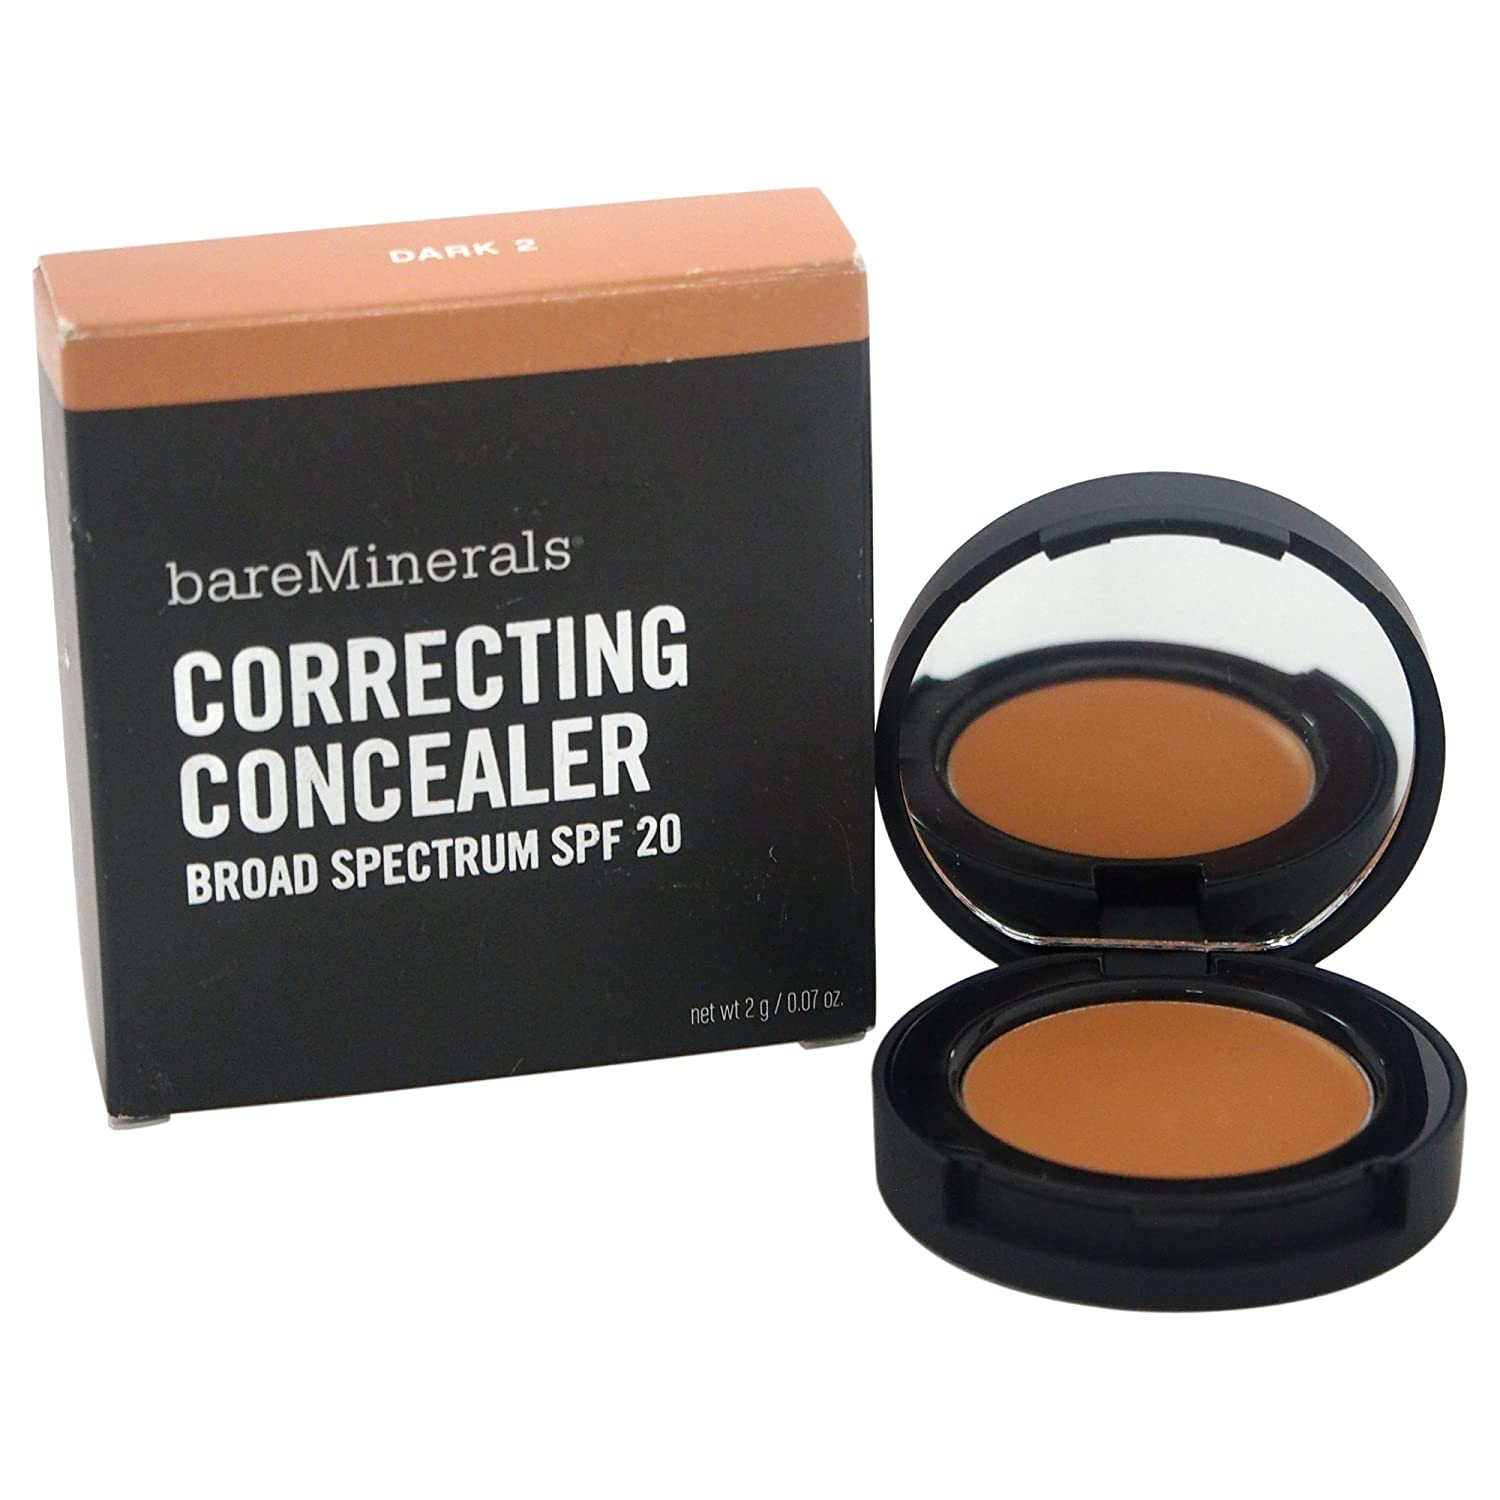 SPF 20 Correcting Concealer in Deep 2